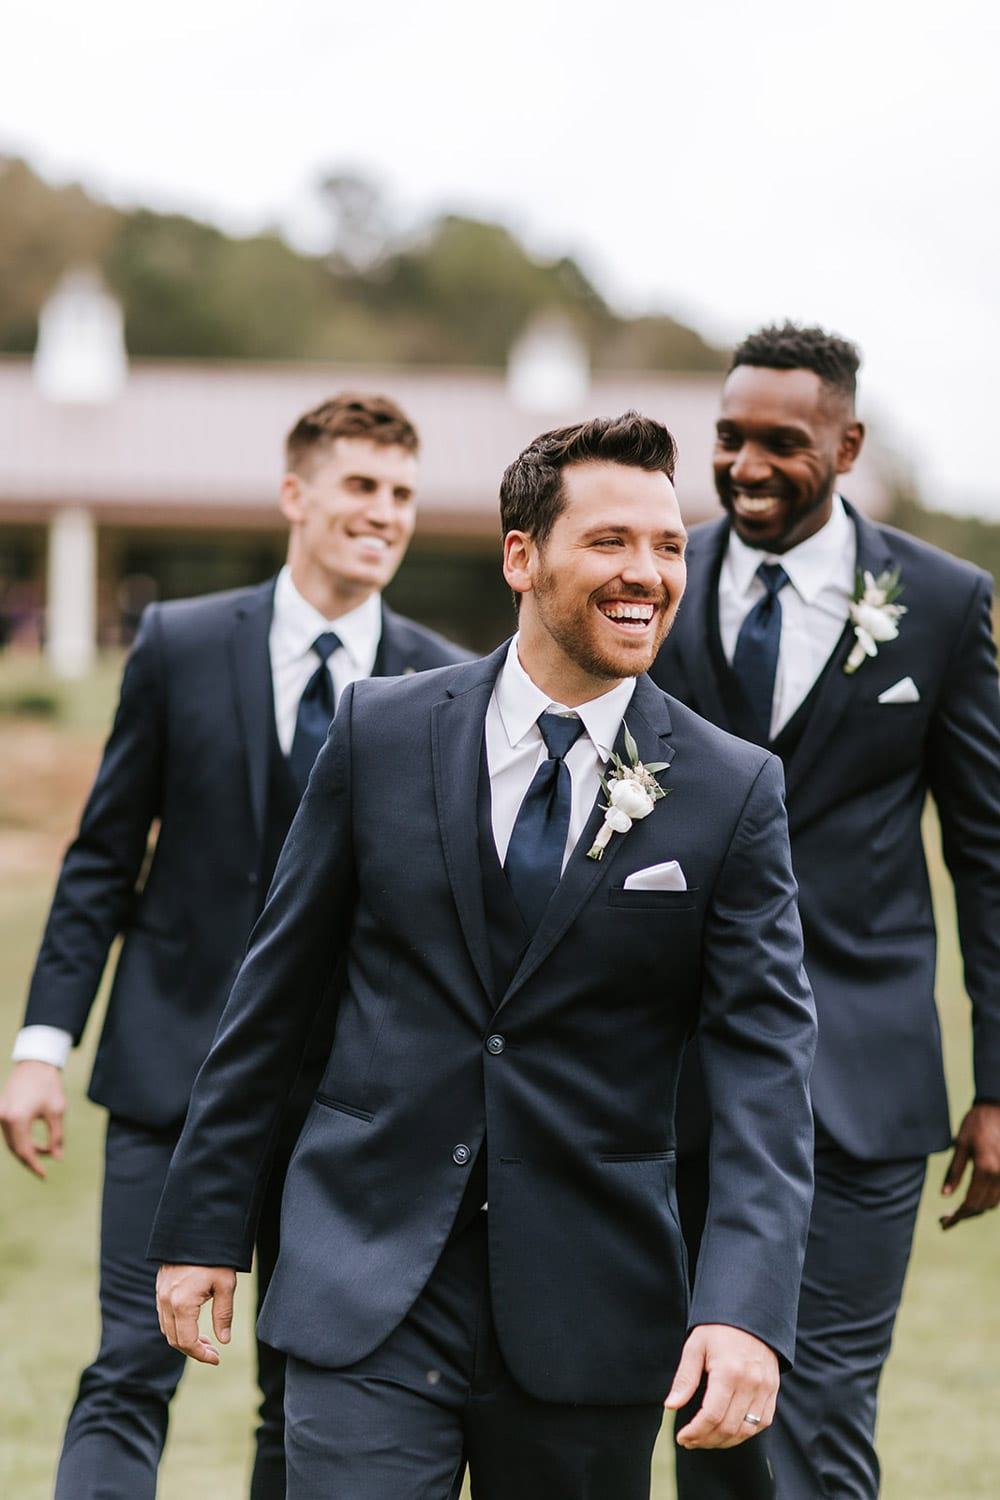 Groomsmen walking outside